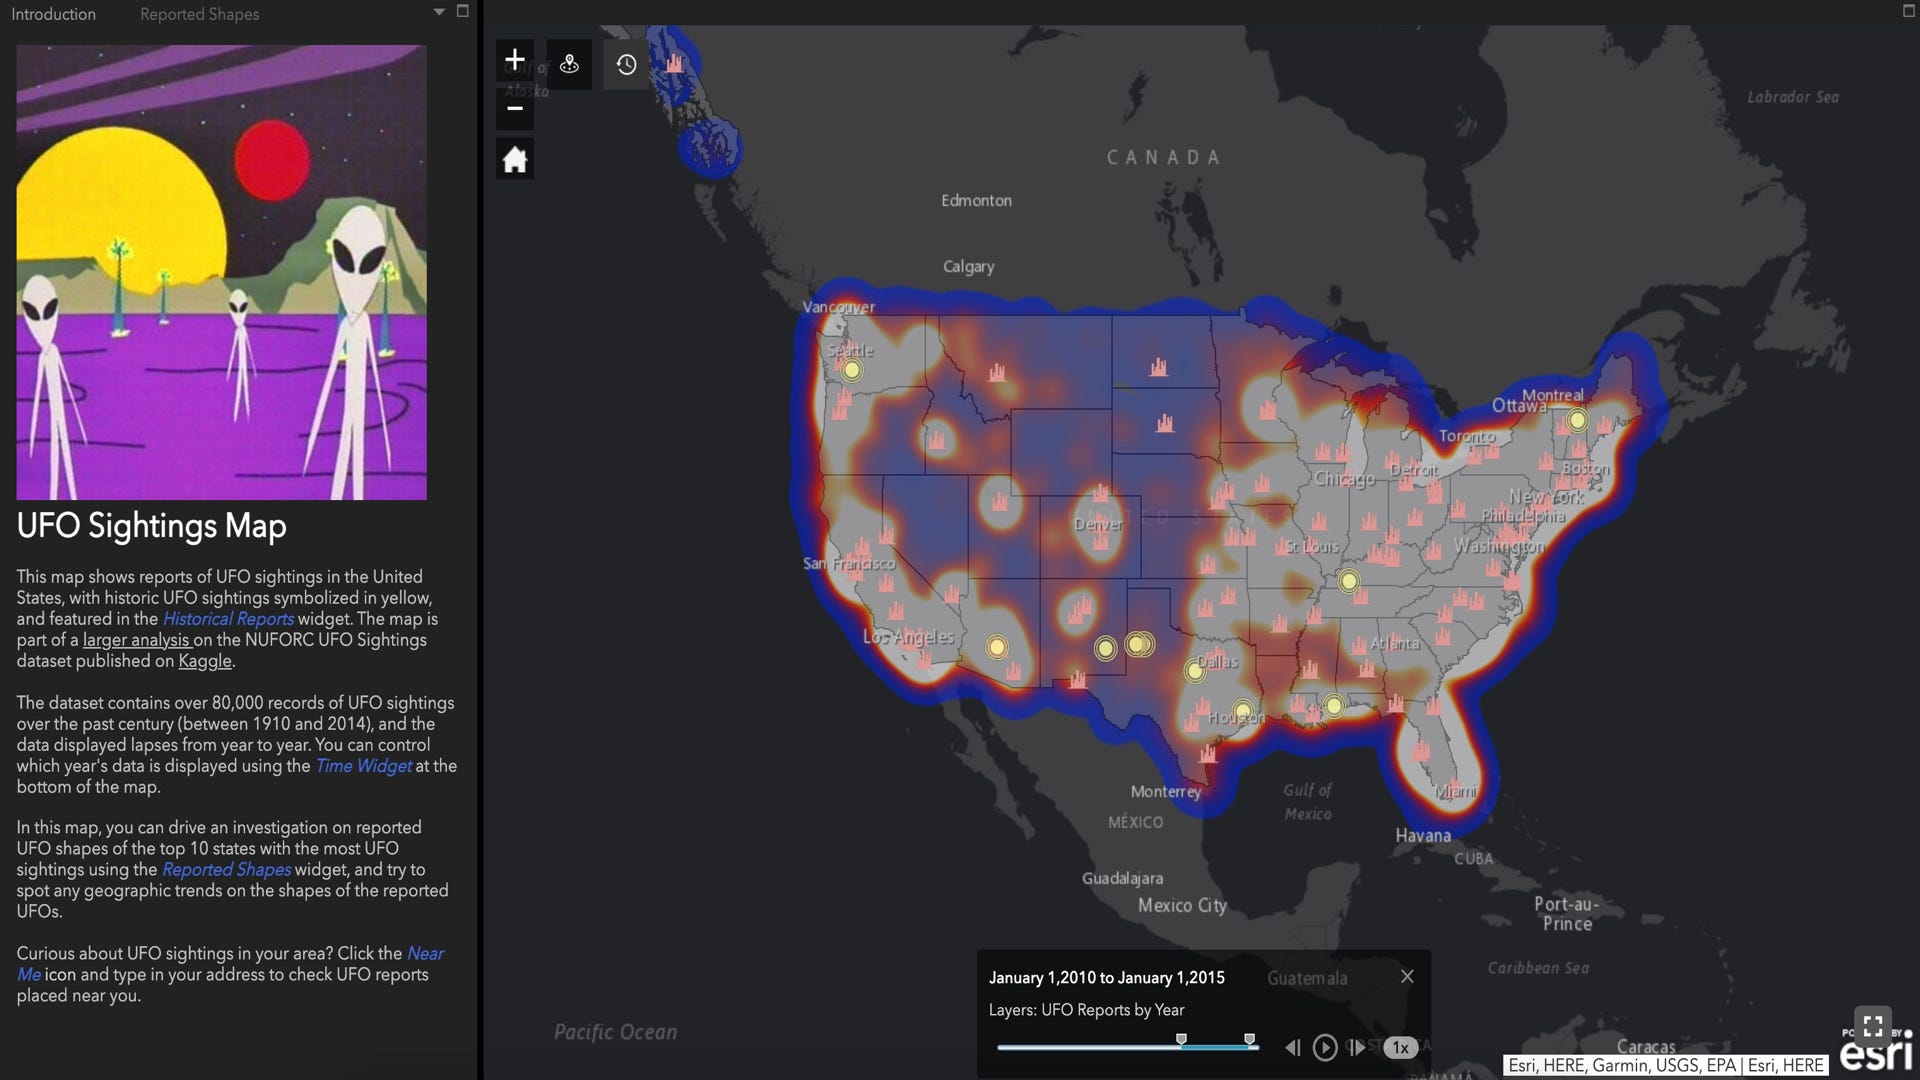 UFO sightings on an interactive map